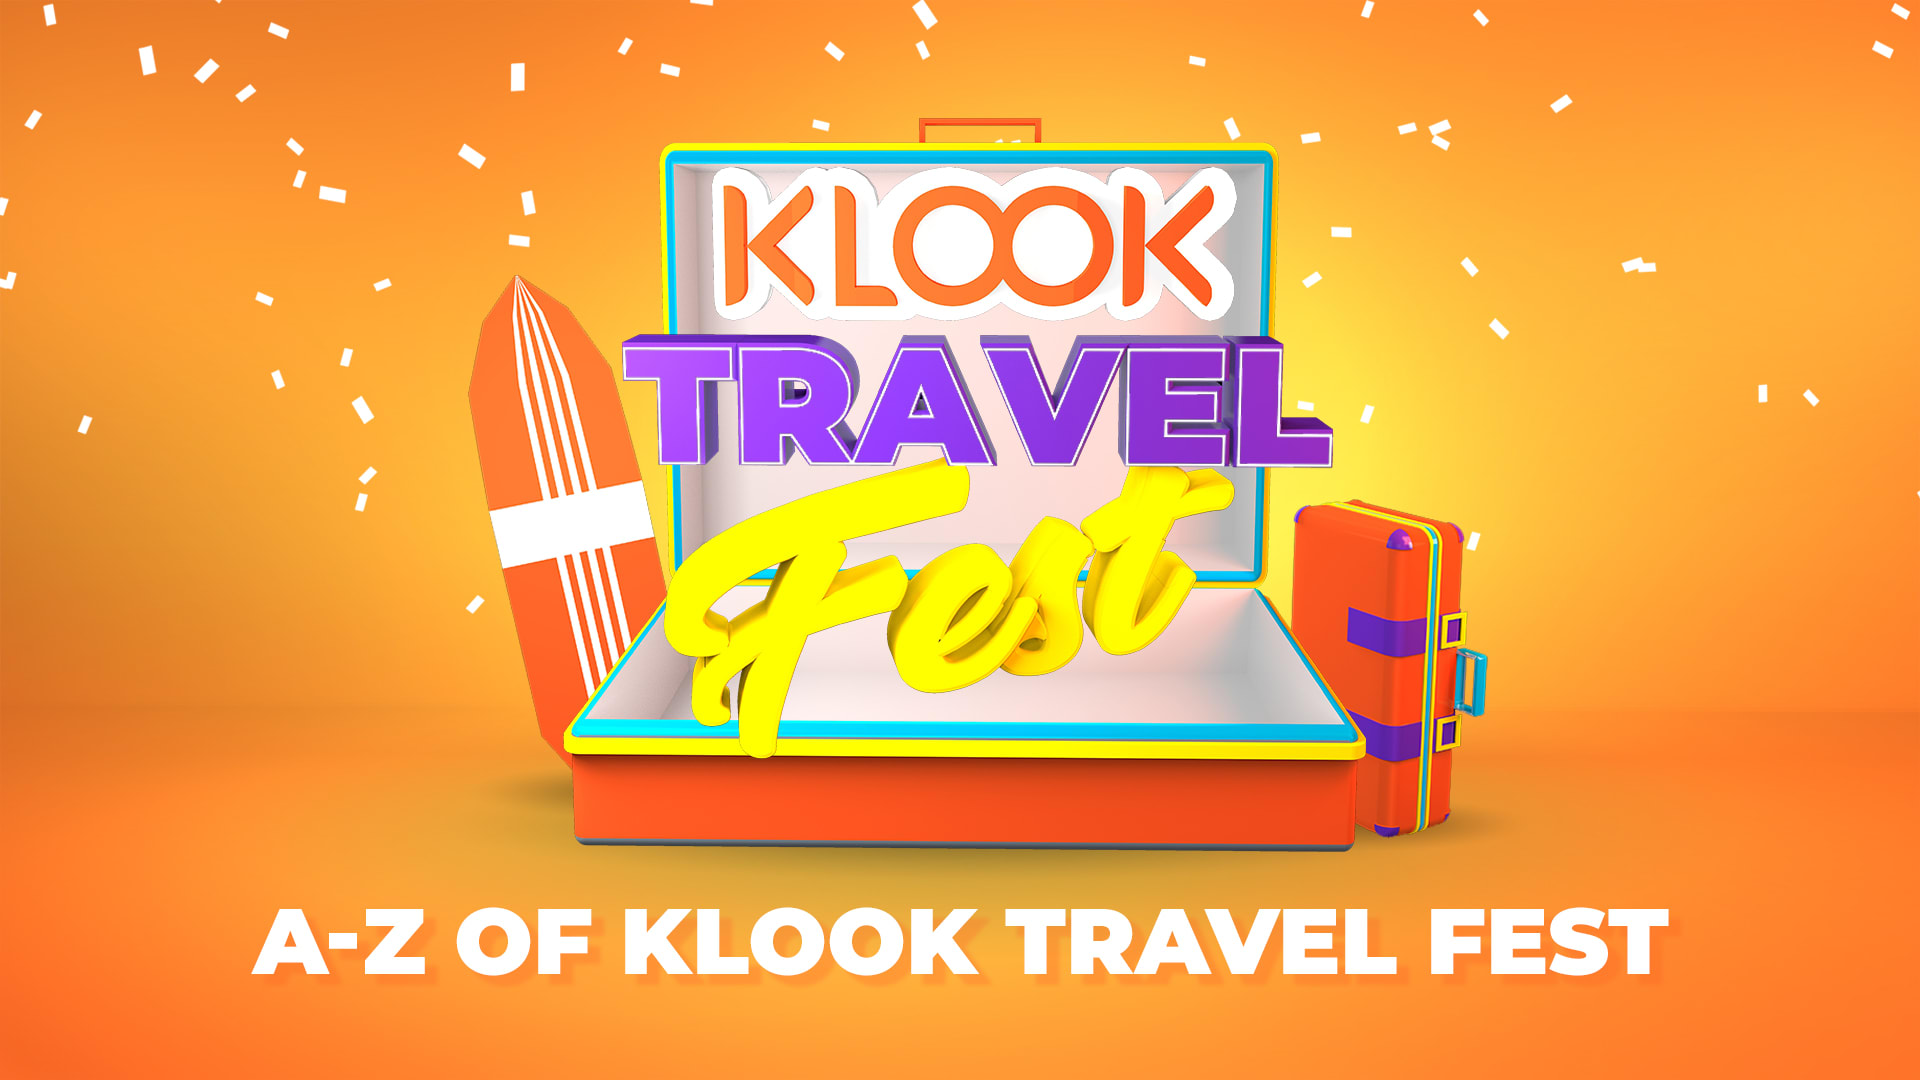 klook travel fest